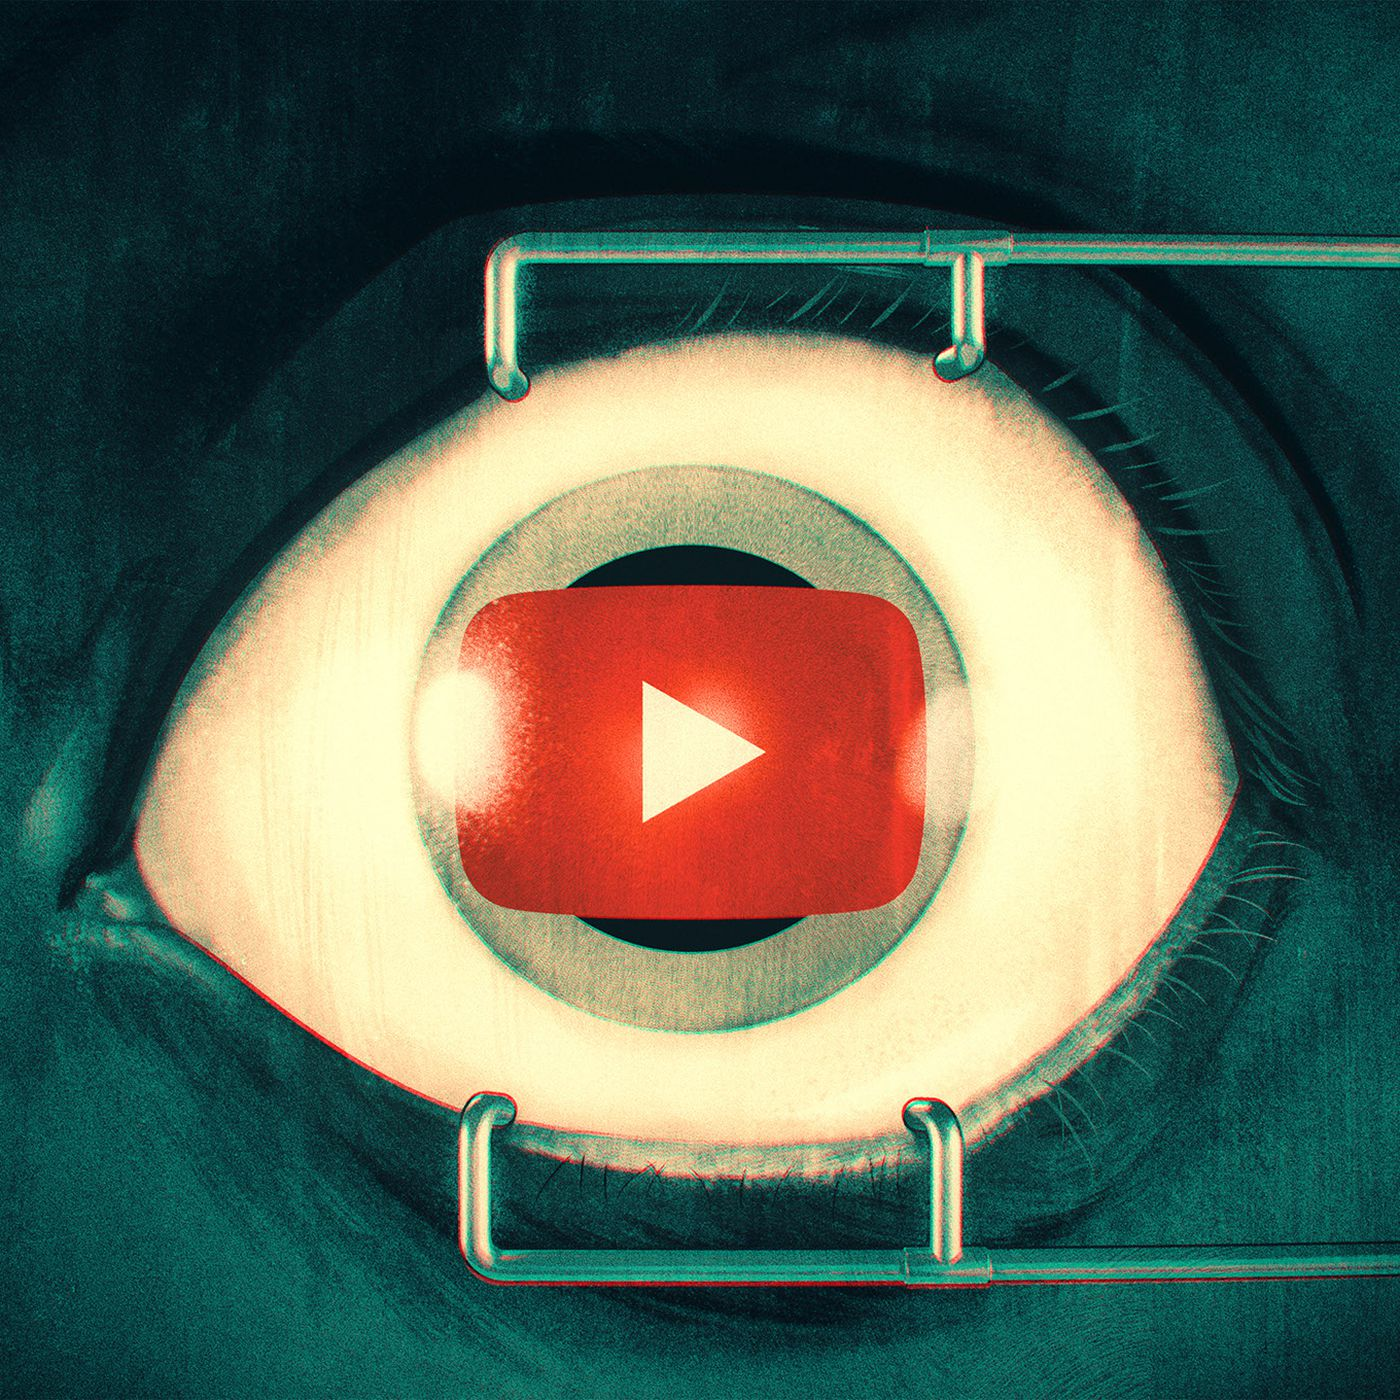 Google and YouTube moderators speak out on the work that gave them PTSD